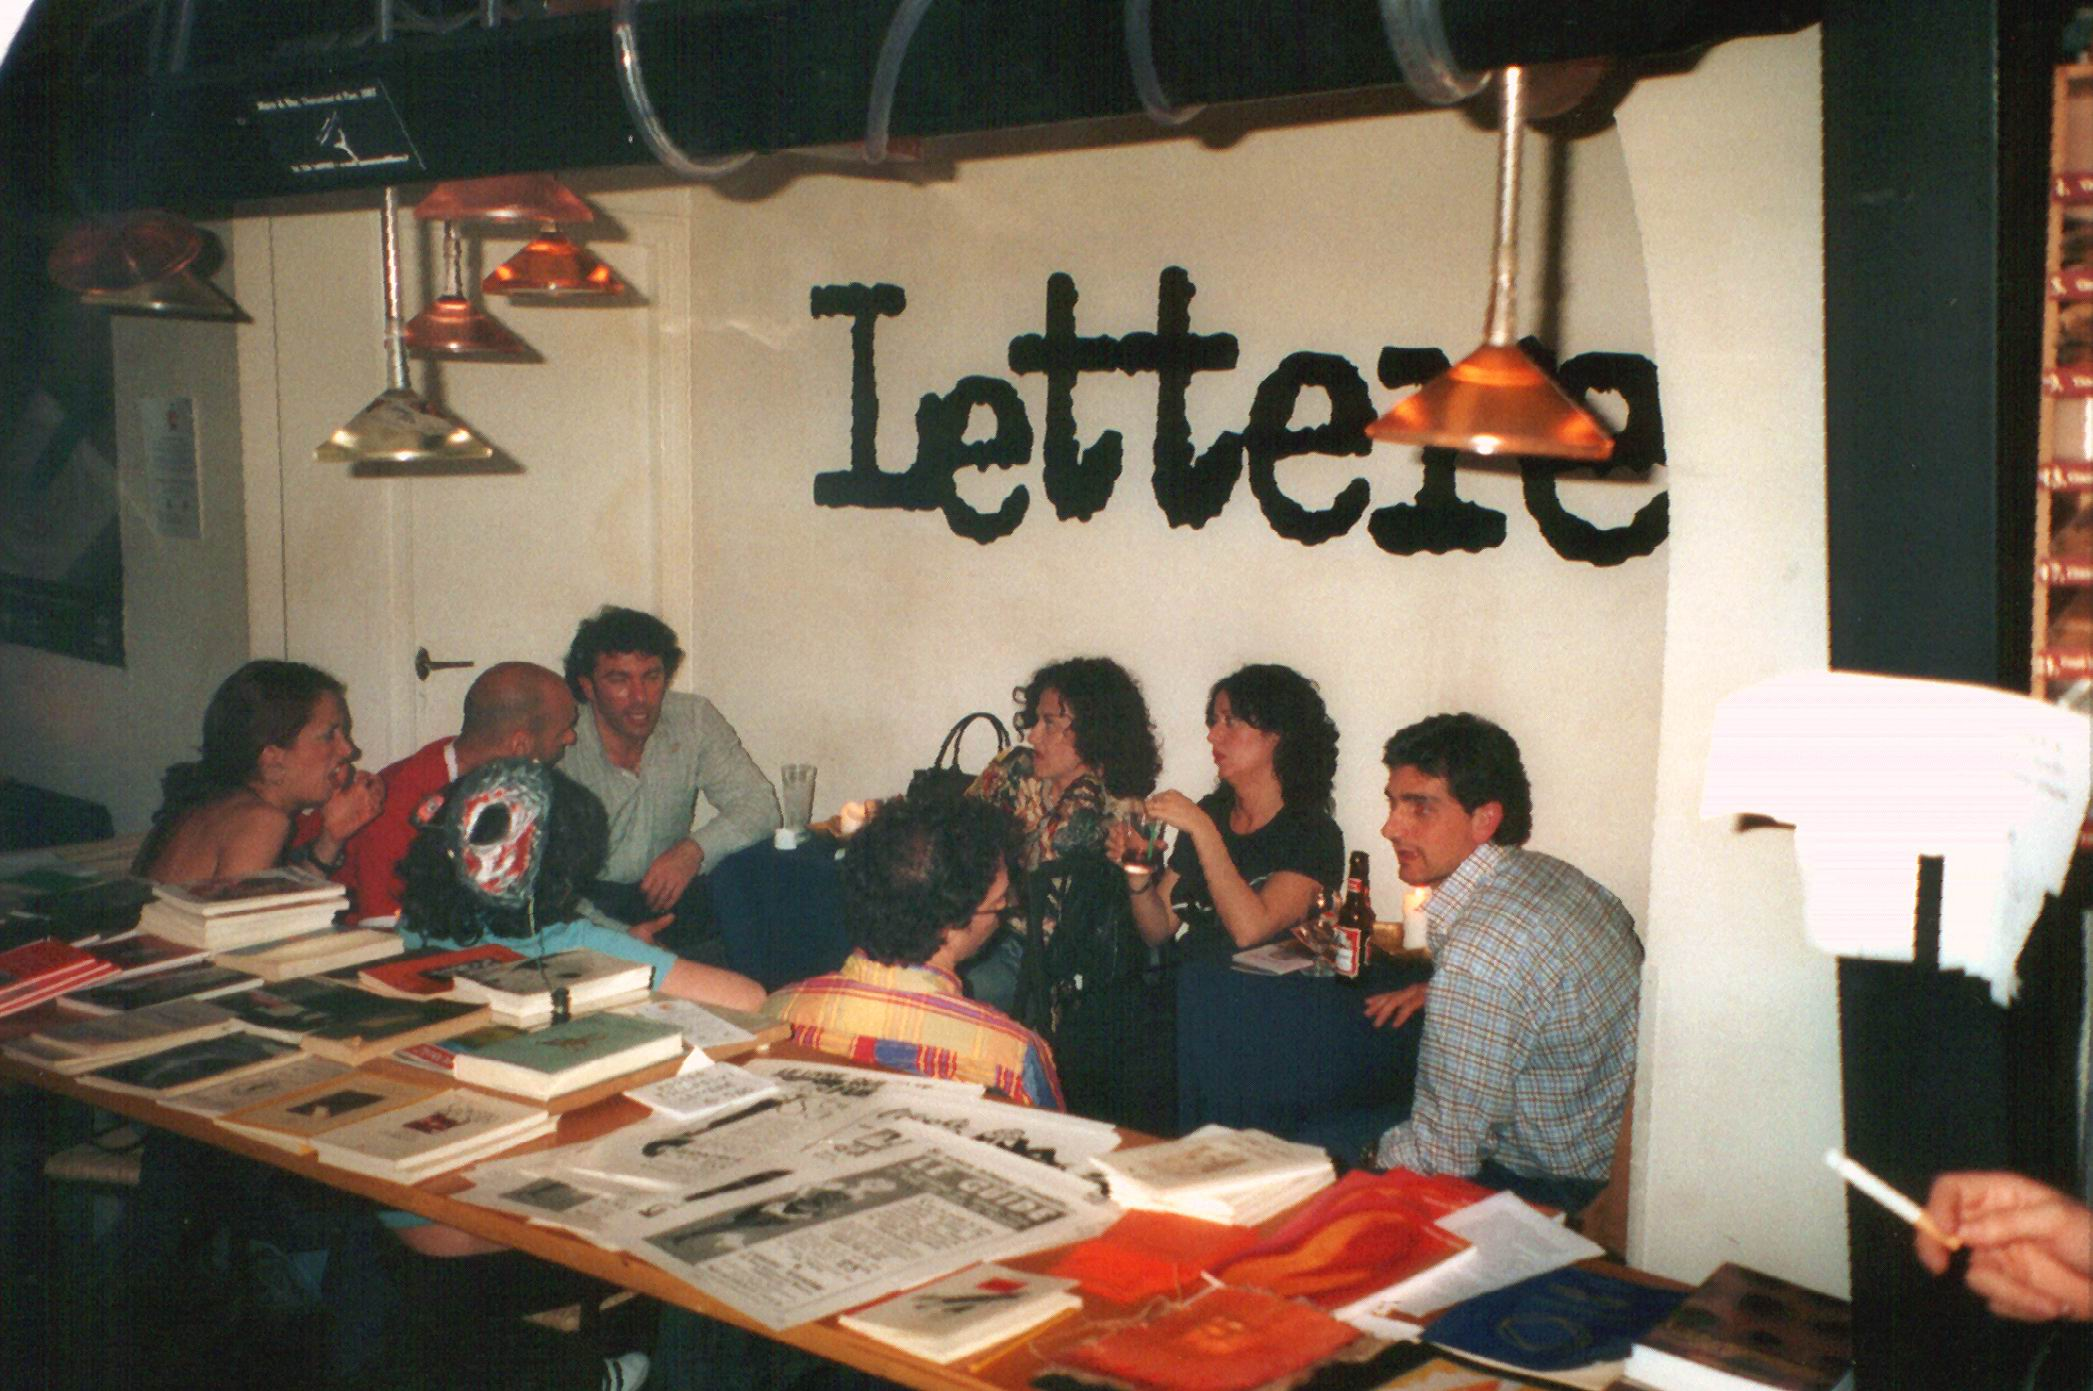 lettere_caffe